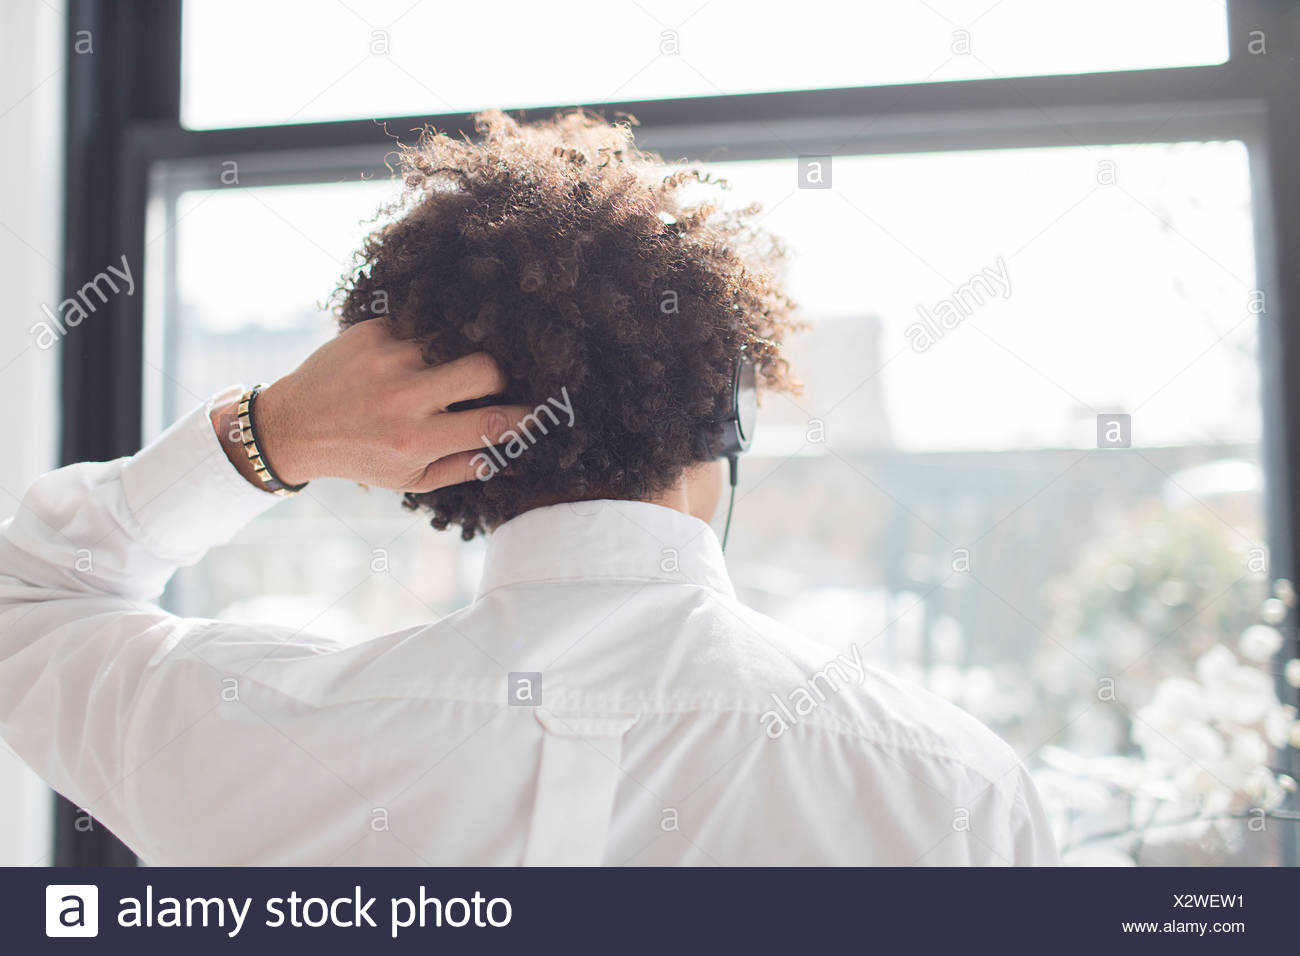 Young man scratching head, rear view Stock Photo